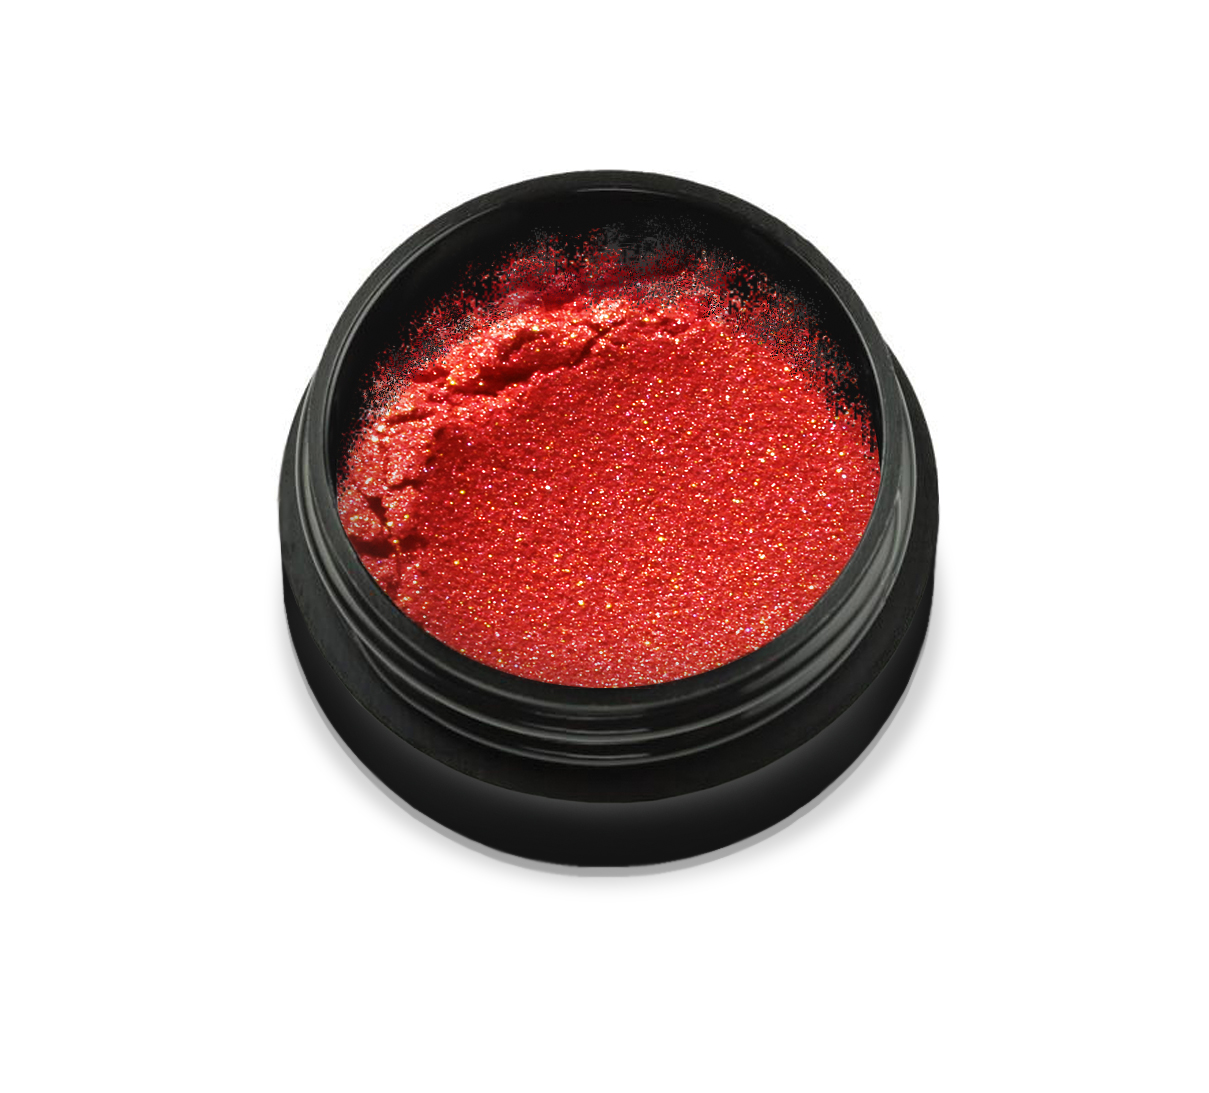 "6023 Pudra cu pigmenti 'Didier Lab"",iridescent red 2,5g/Pigment powder 'Didier Lab"",iridescent red"